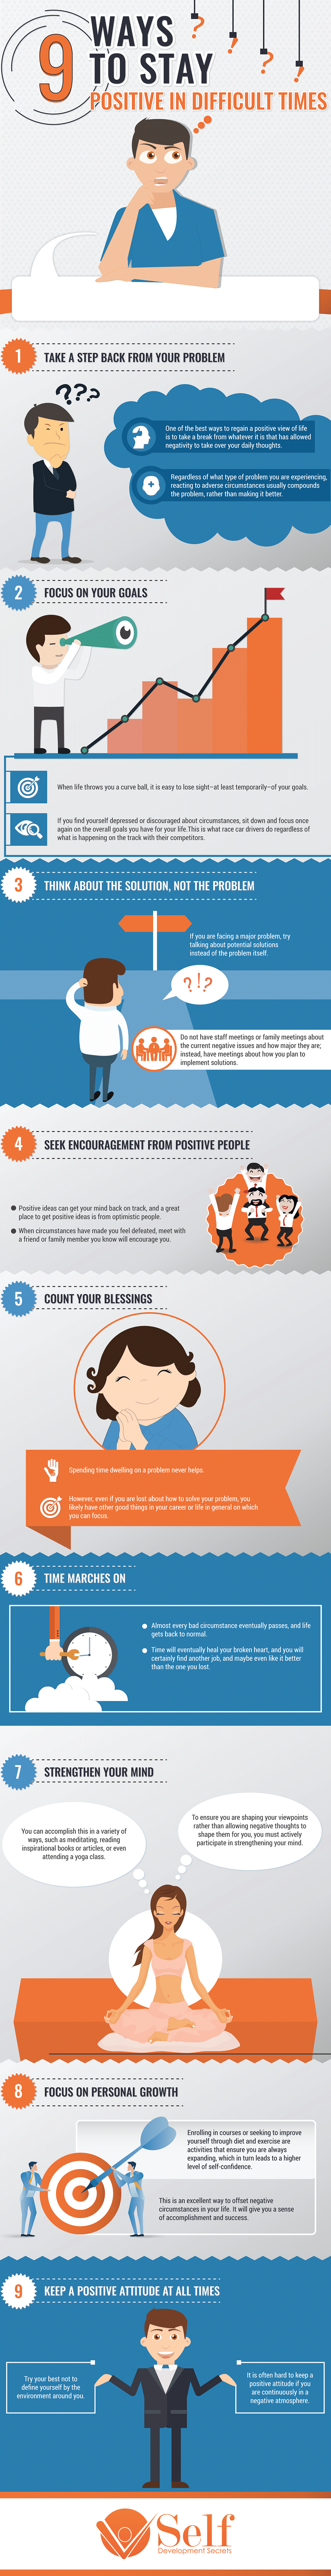 9 Ways To Stay Positive Infographic